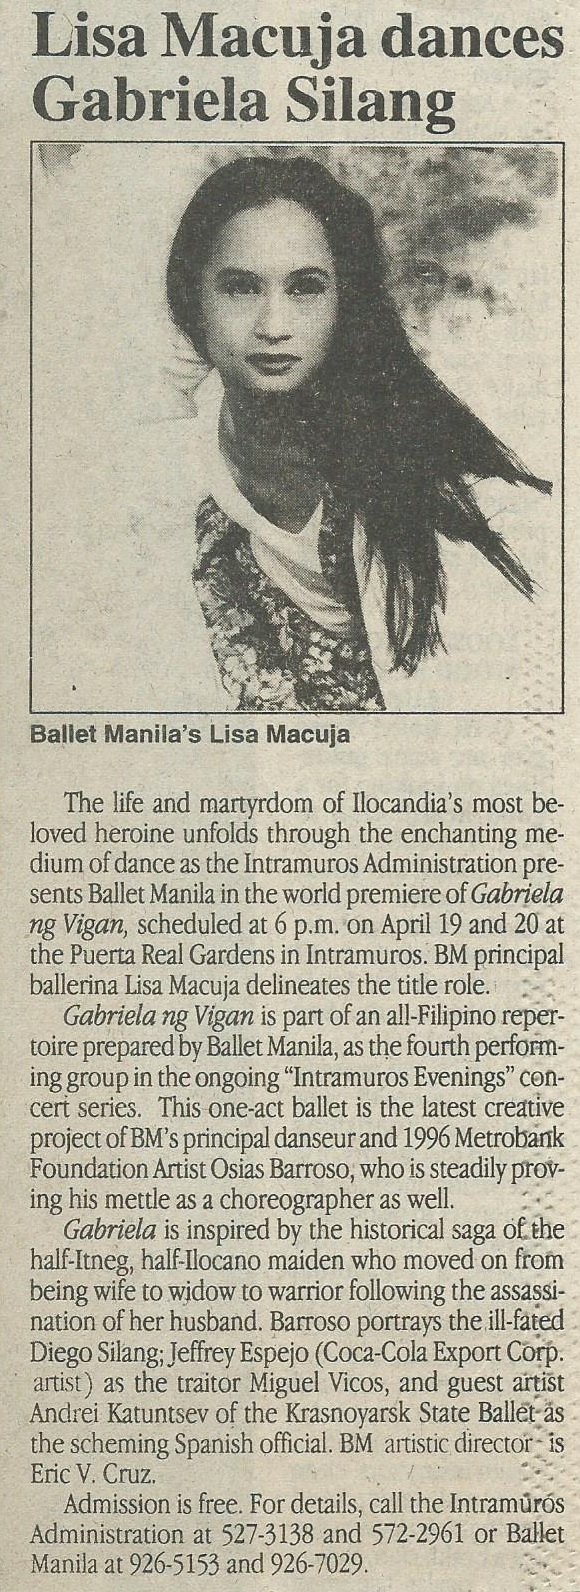 Another newspaper clipping shares details about the show which was open and free to the public. From the Ballet Manila Archives collection